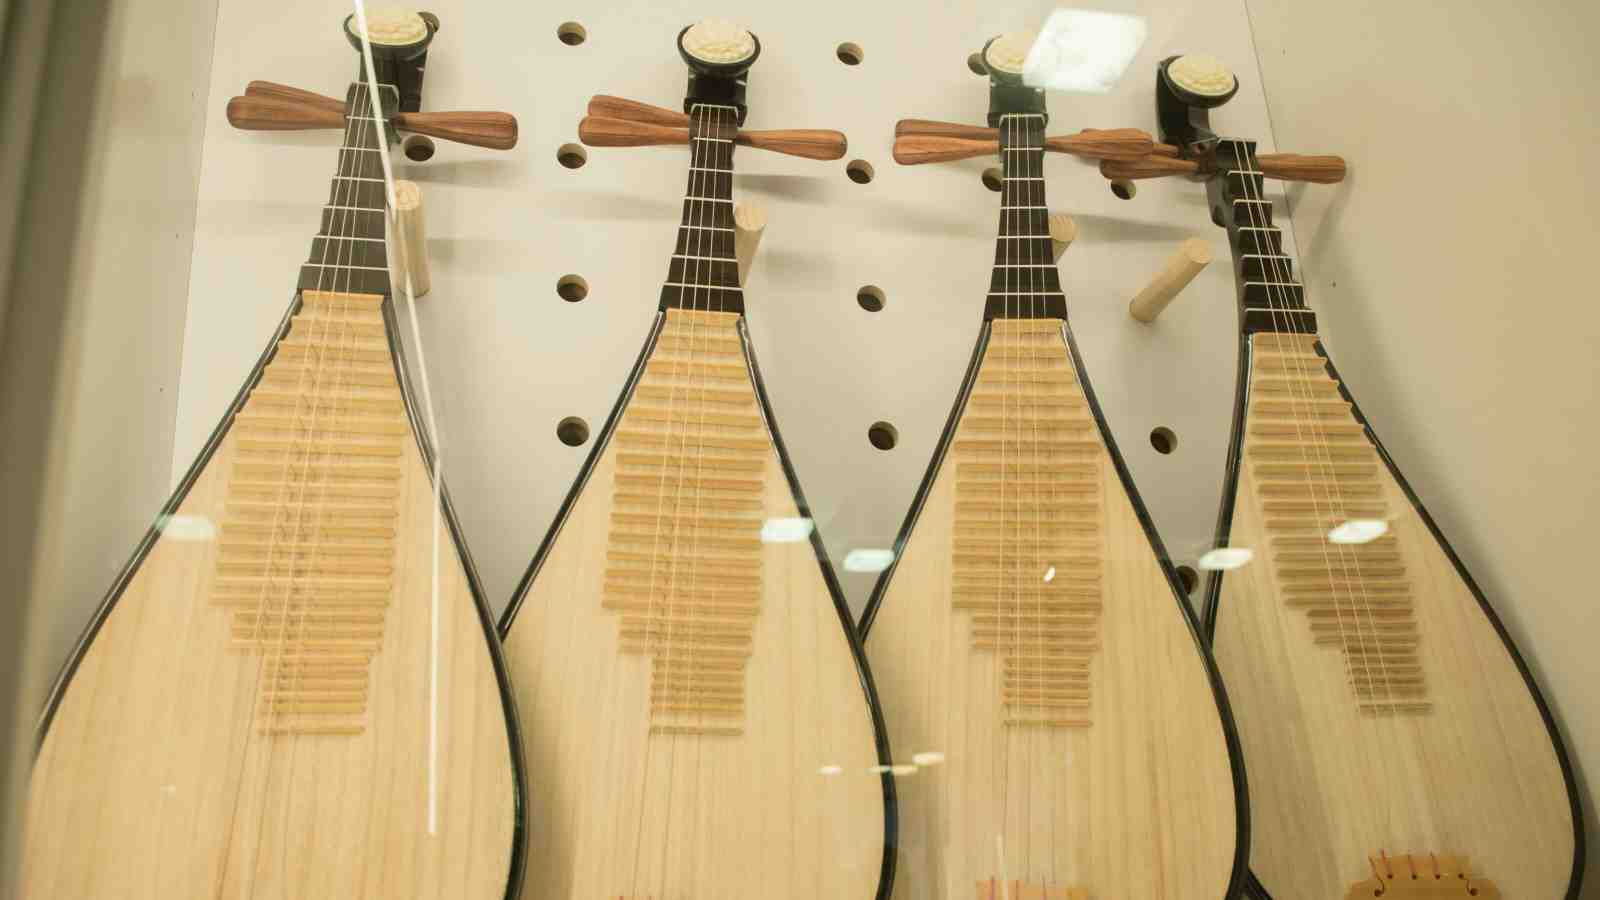 Our extensive Instrument collections at NZSM